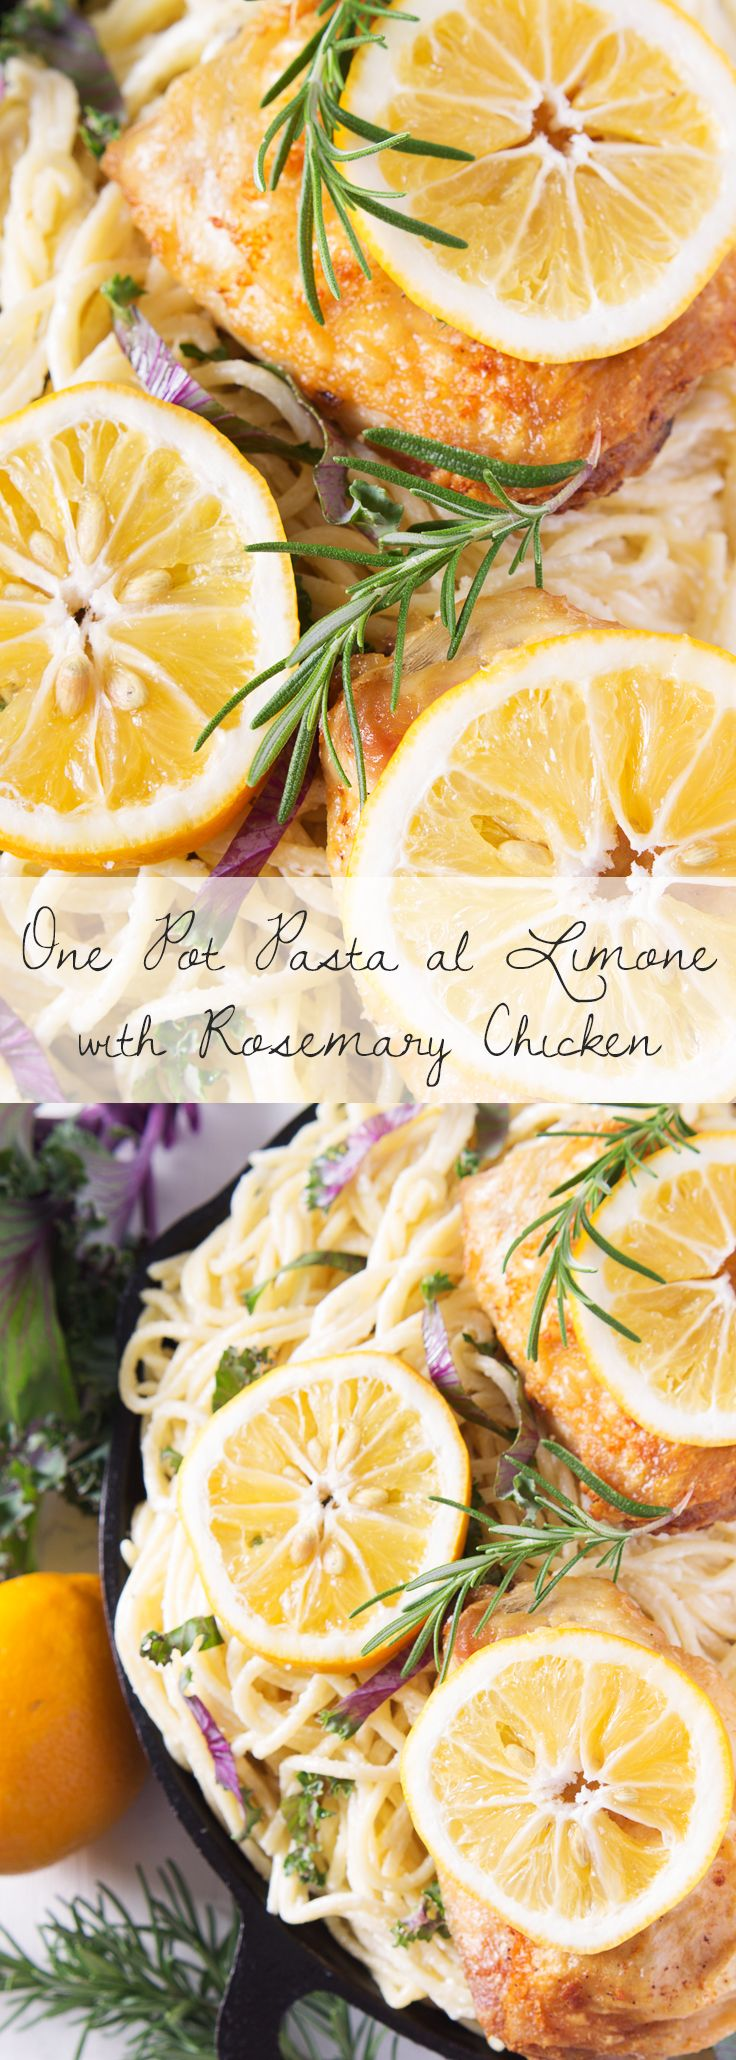 A deliciously easy one pot lemon spaghetti recipe with rosemary and lemon chicken that will impress the pants off your dinner guests! I made this dish with spaghetti but it will work perfectly with any semolina pasta.